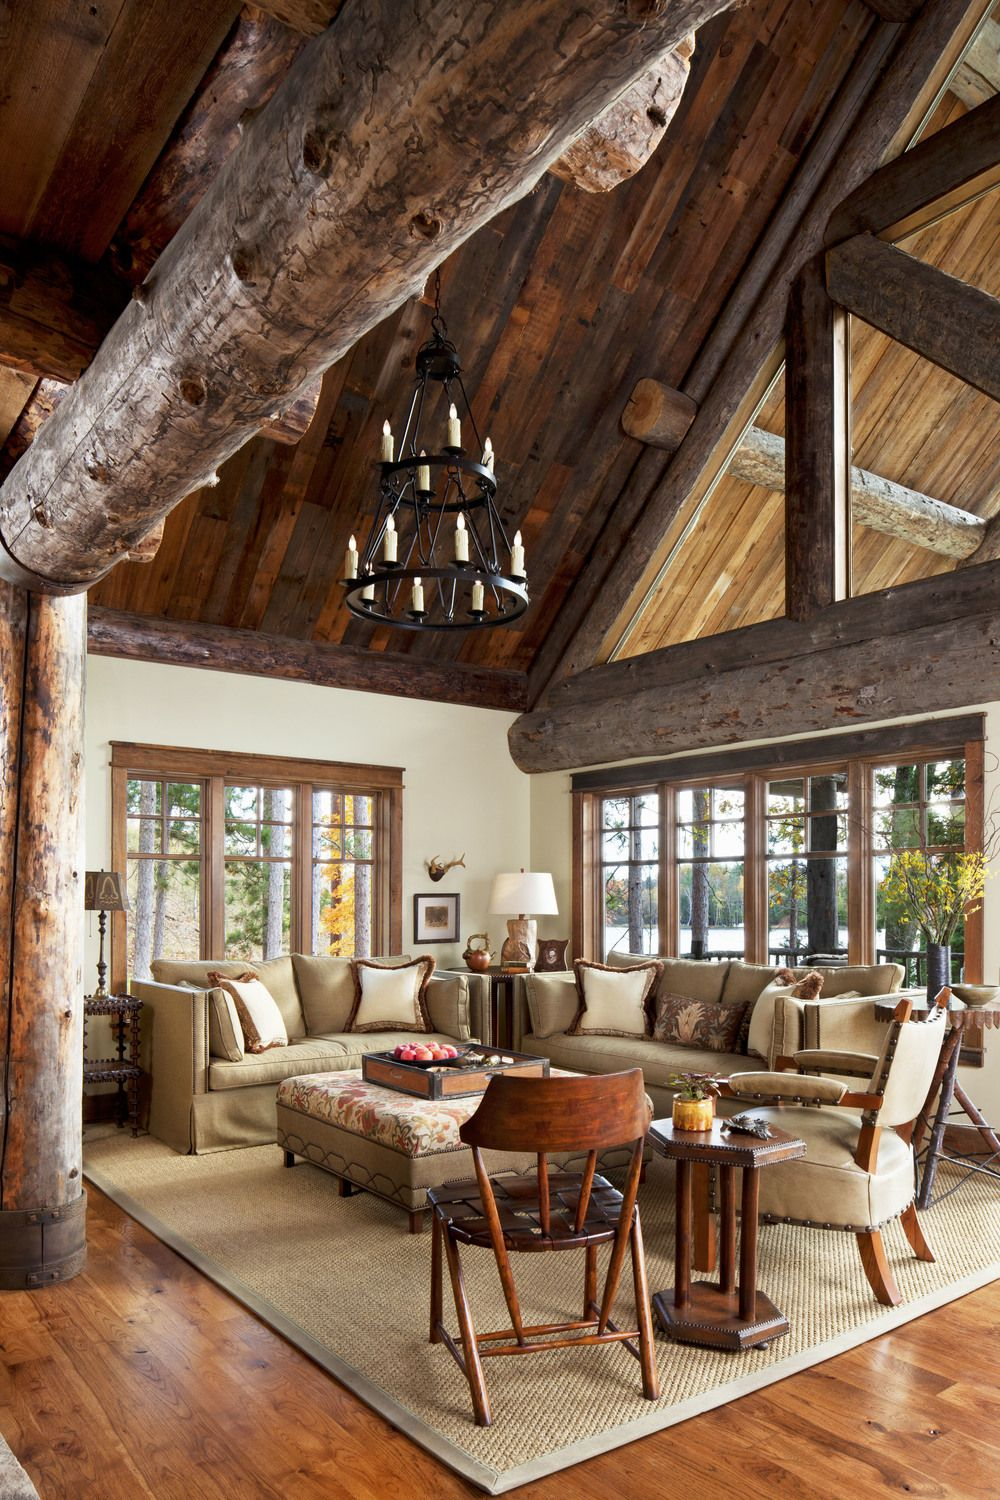 42 Ideas For Living Room Small Rustic Beams Livingroom: House Design Kitchen, High